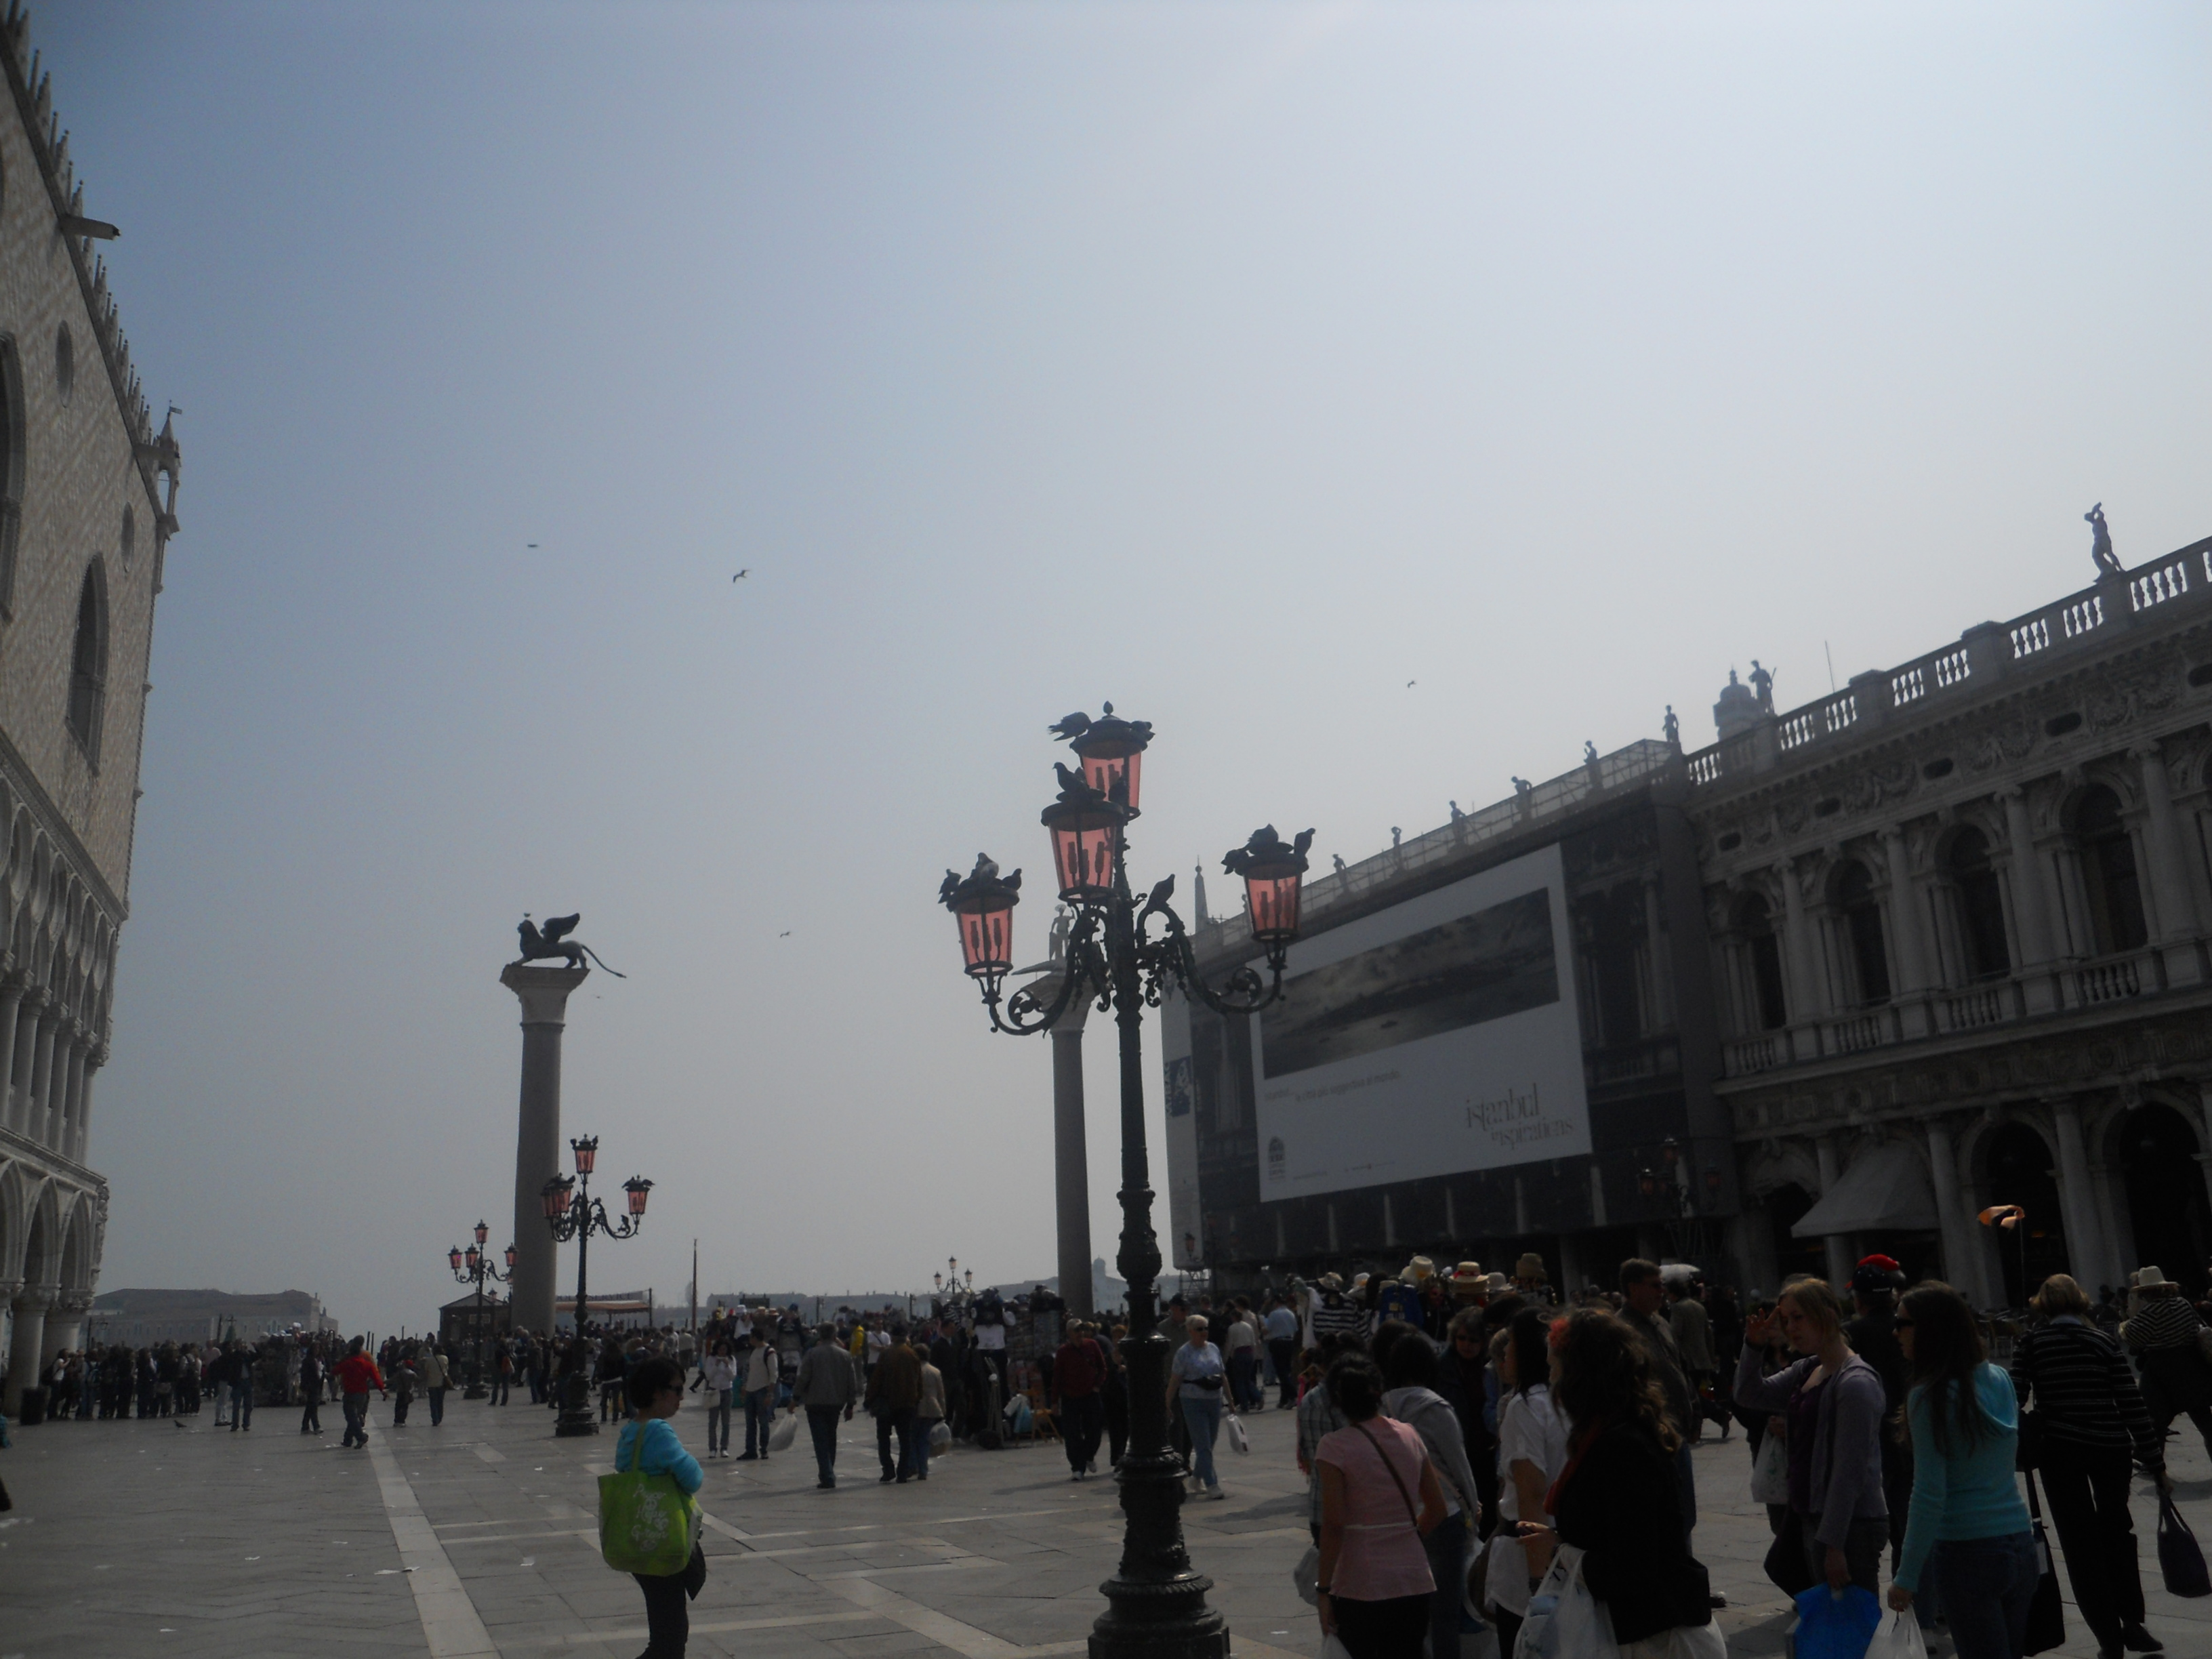 File:San Marco Square (5986671379).jpg - Wikimedia Commons